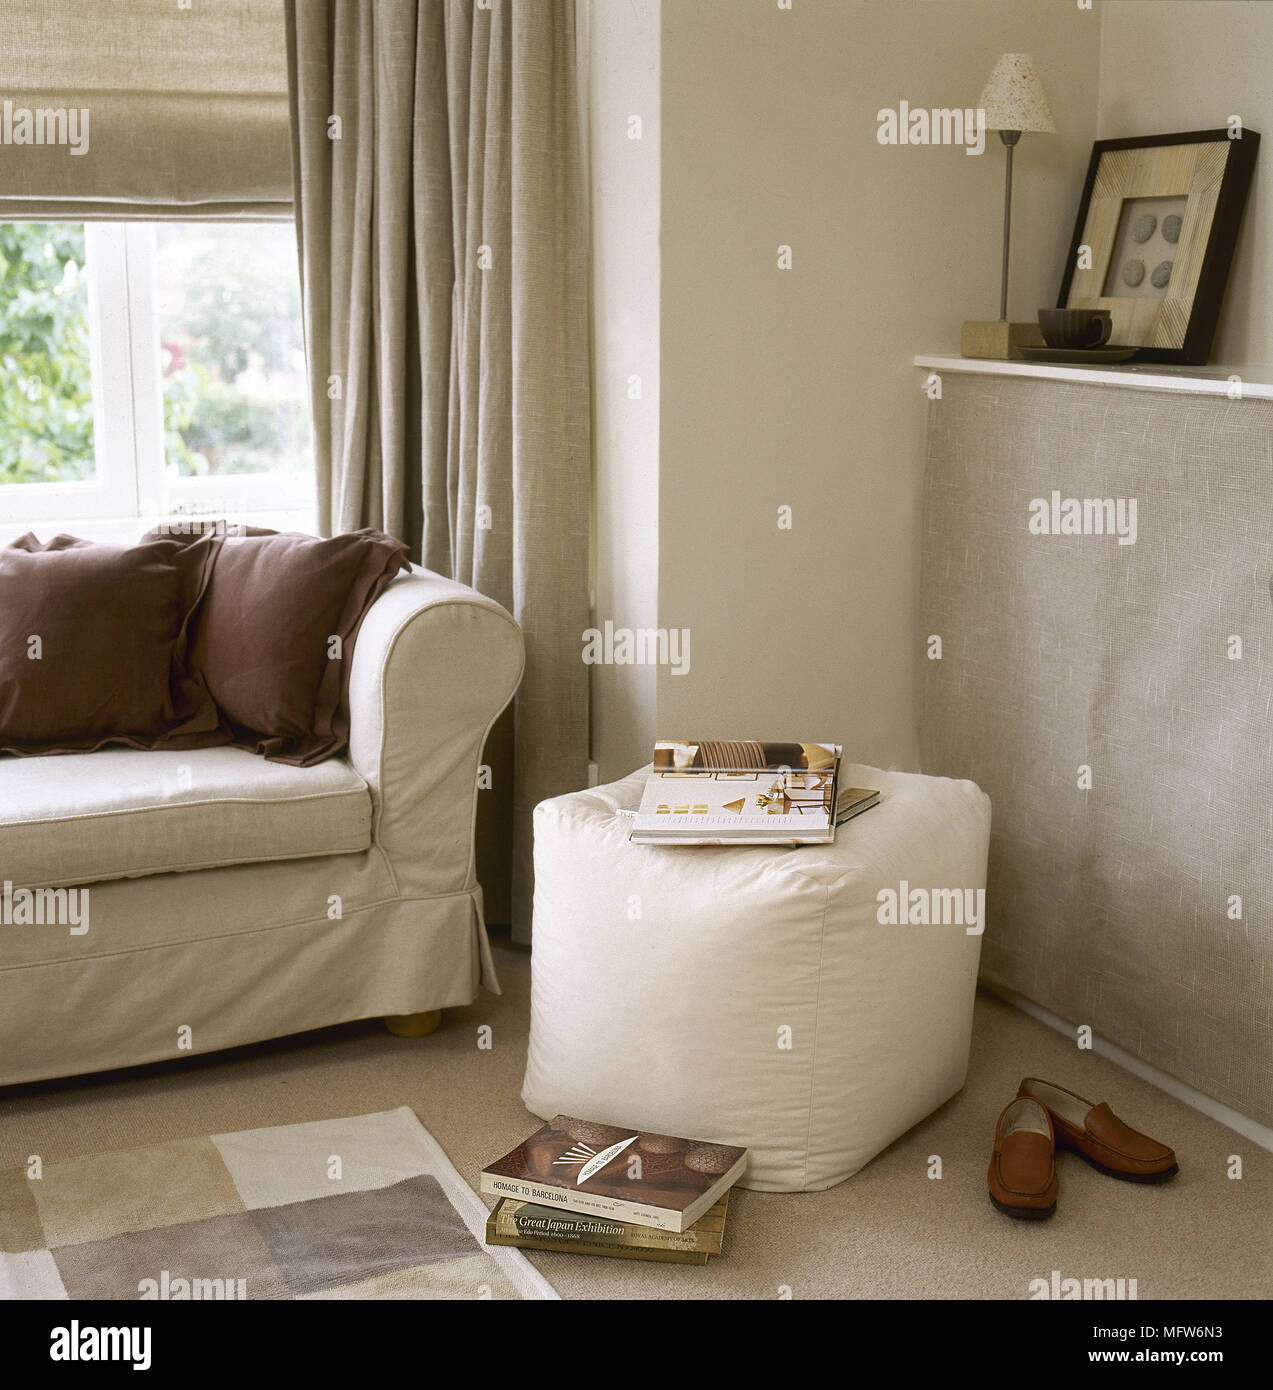 Upholstered sofa and ottoman in sitting room in neutral colours - Stock Image